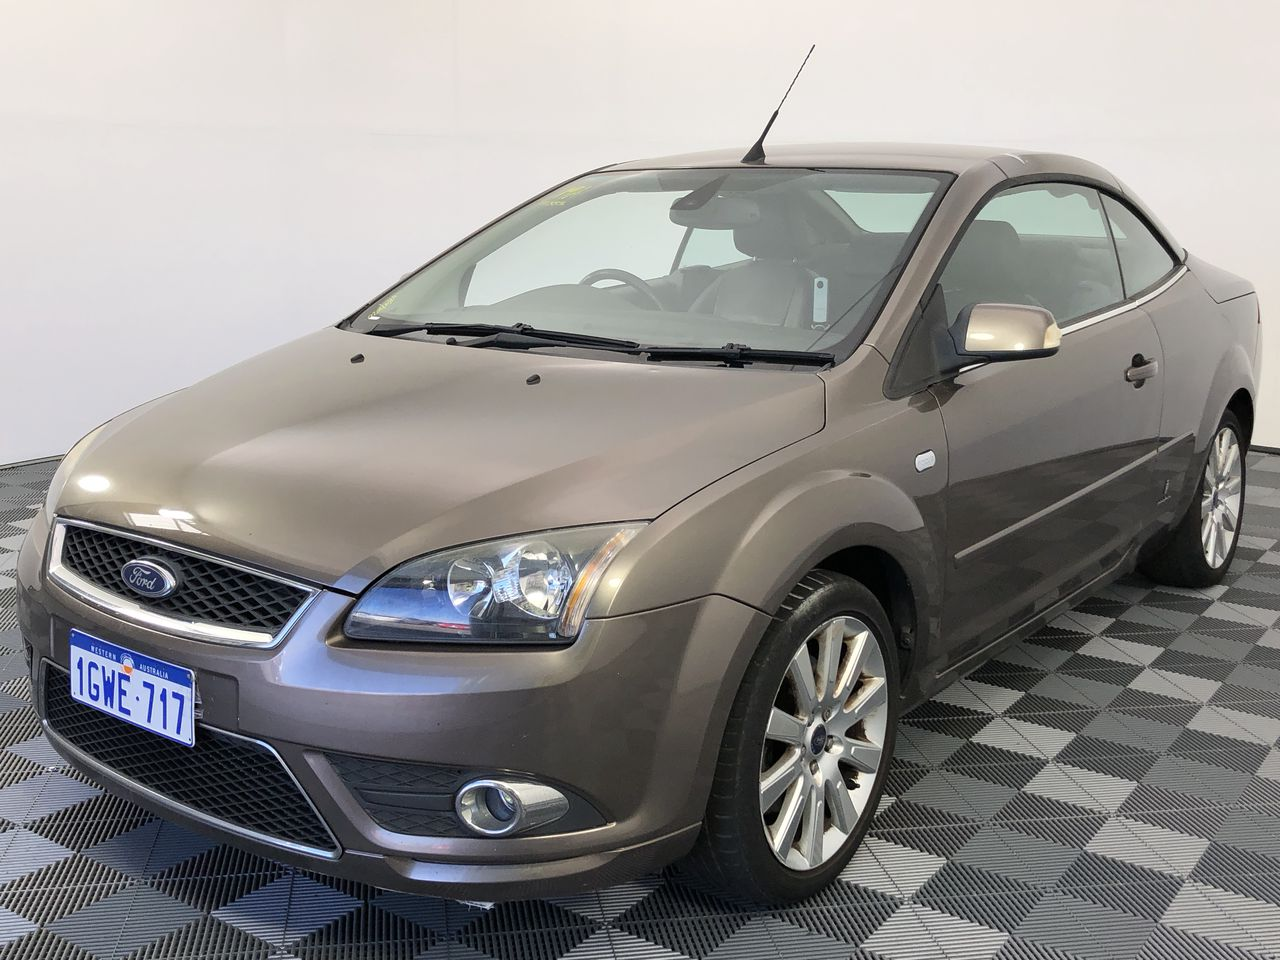 2007 Ford Focus Coupe-Cabriolet LT Automatic Convertible